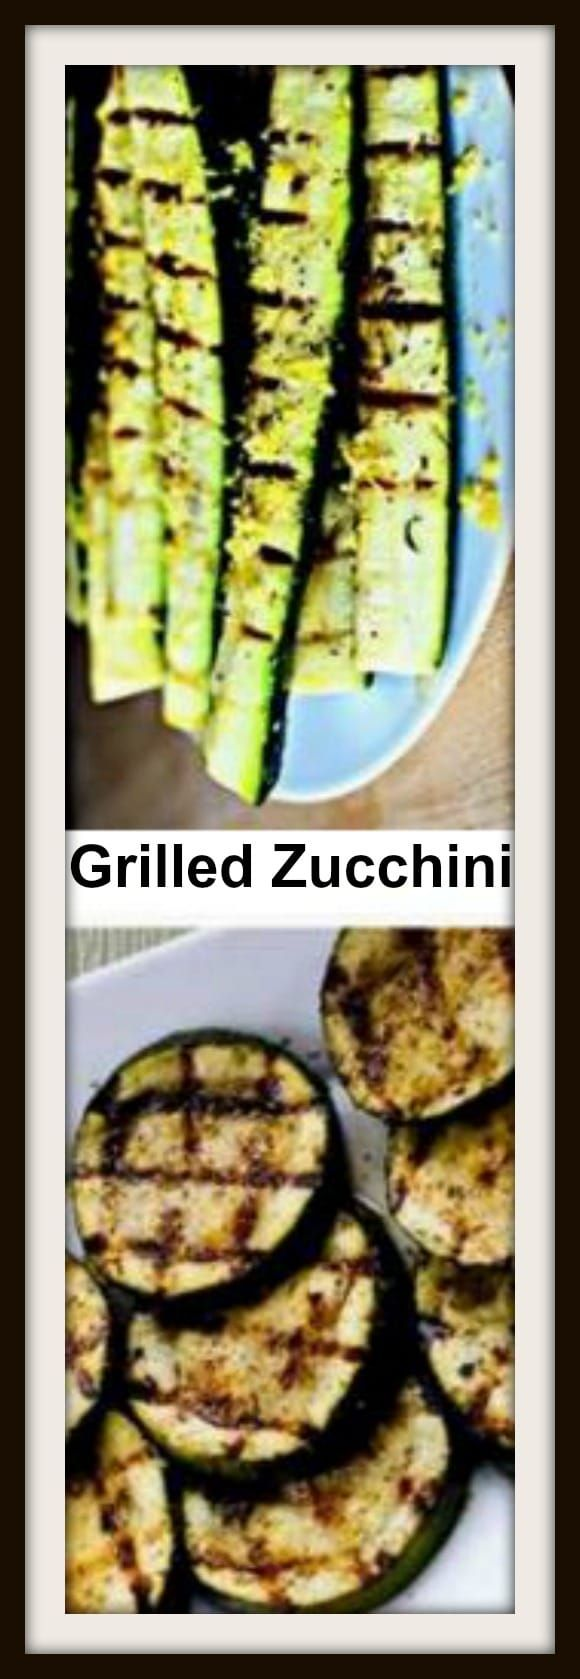 Zucchini with Lemon Salt How to Grill Zucchini - Perfect Every Time ...